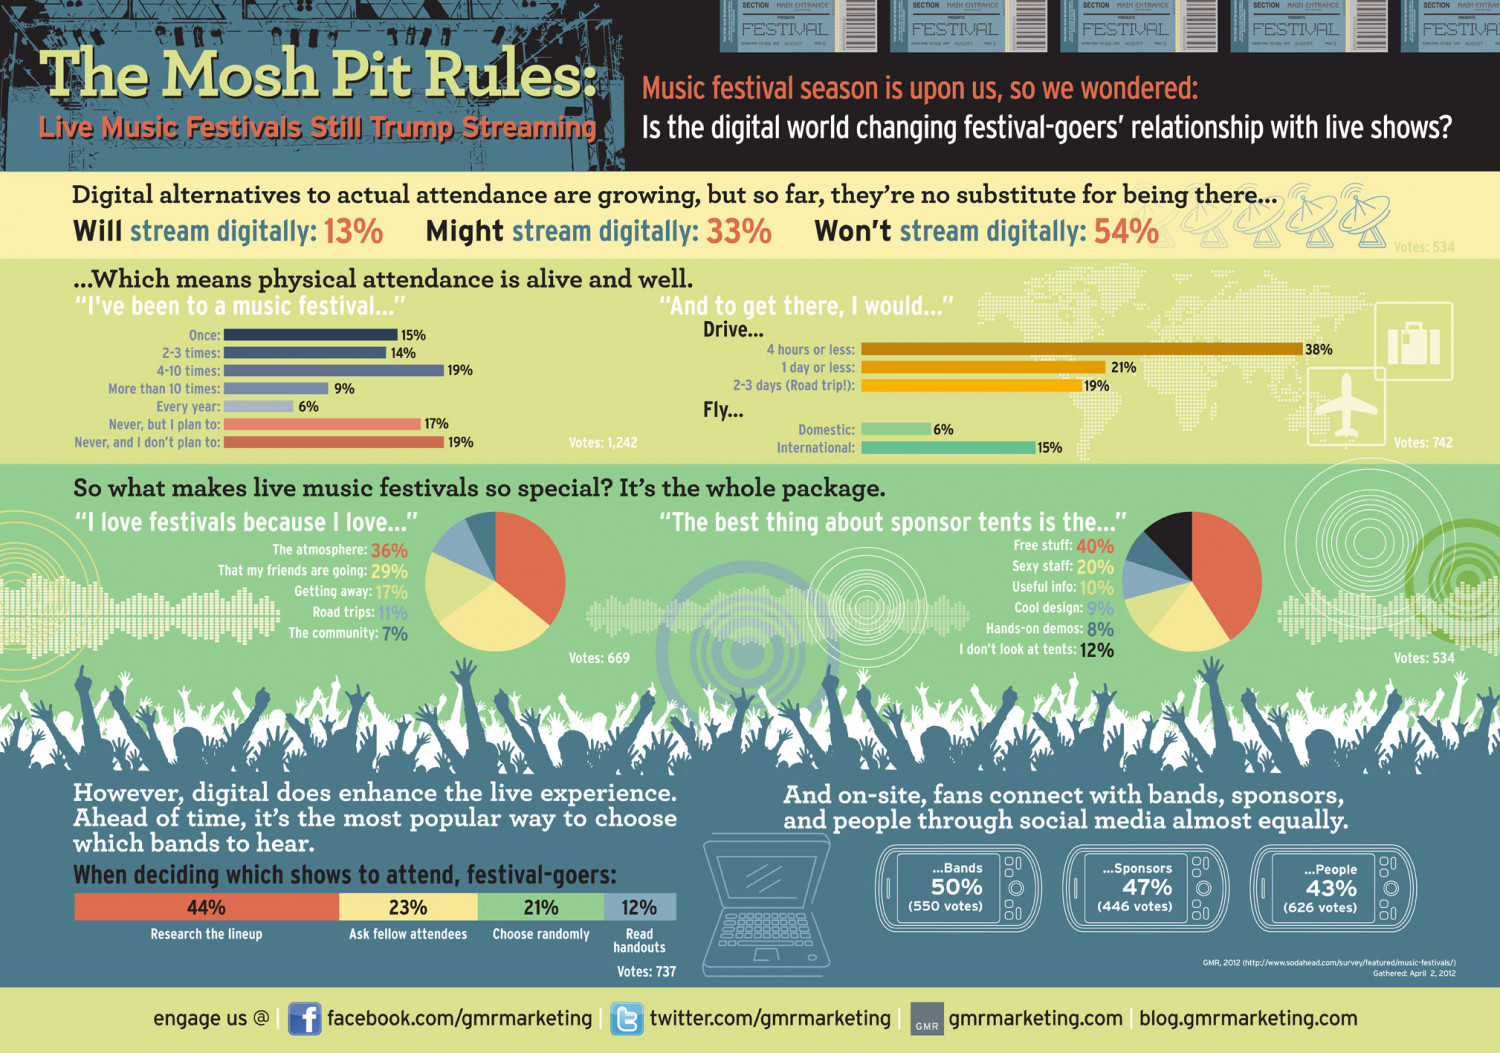 The Mosh Pit Rules: Live Music Festivals Still Trump Streaming Infographic